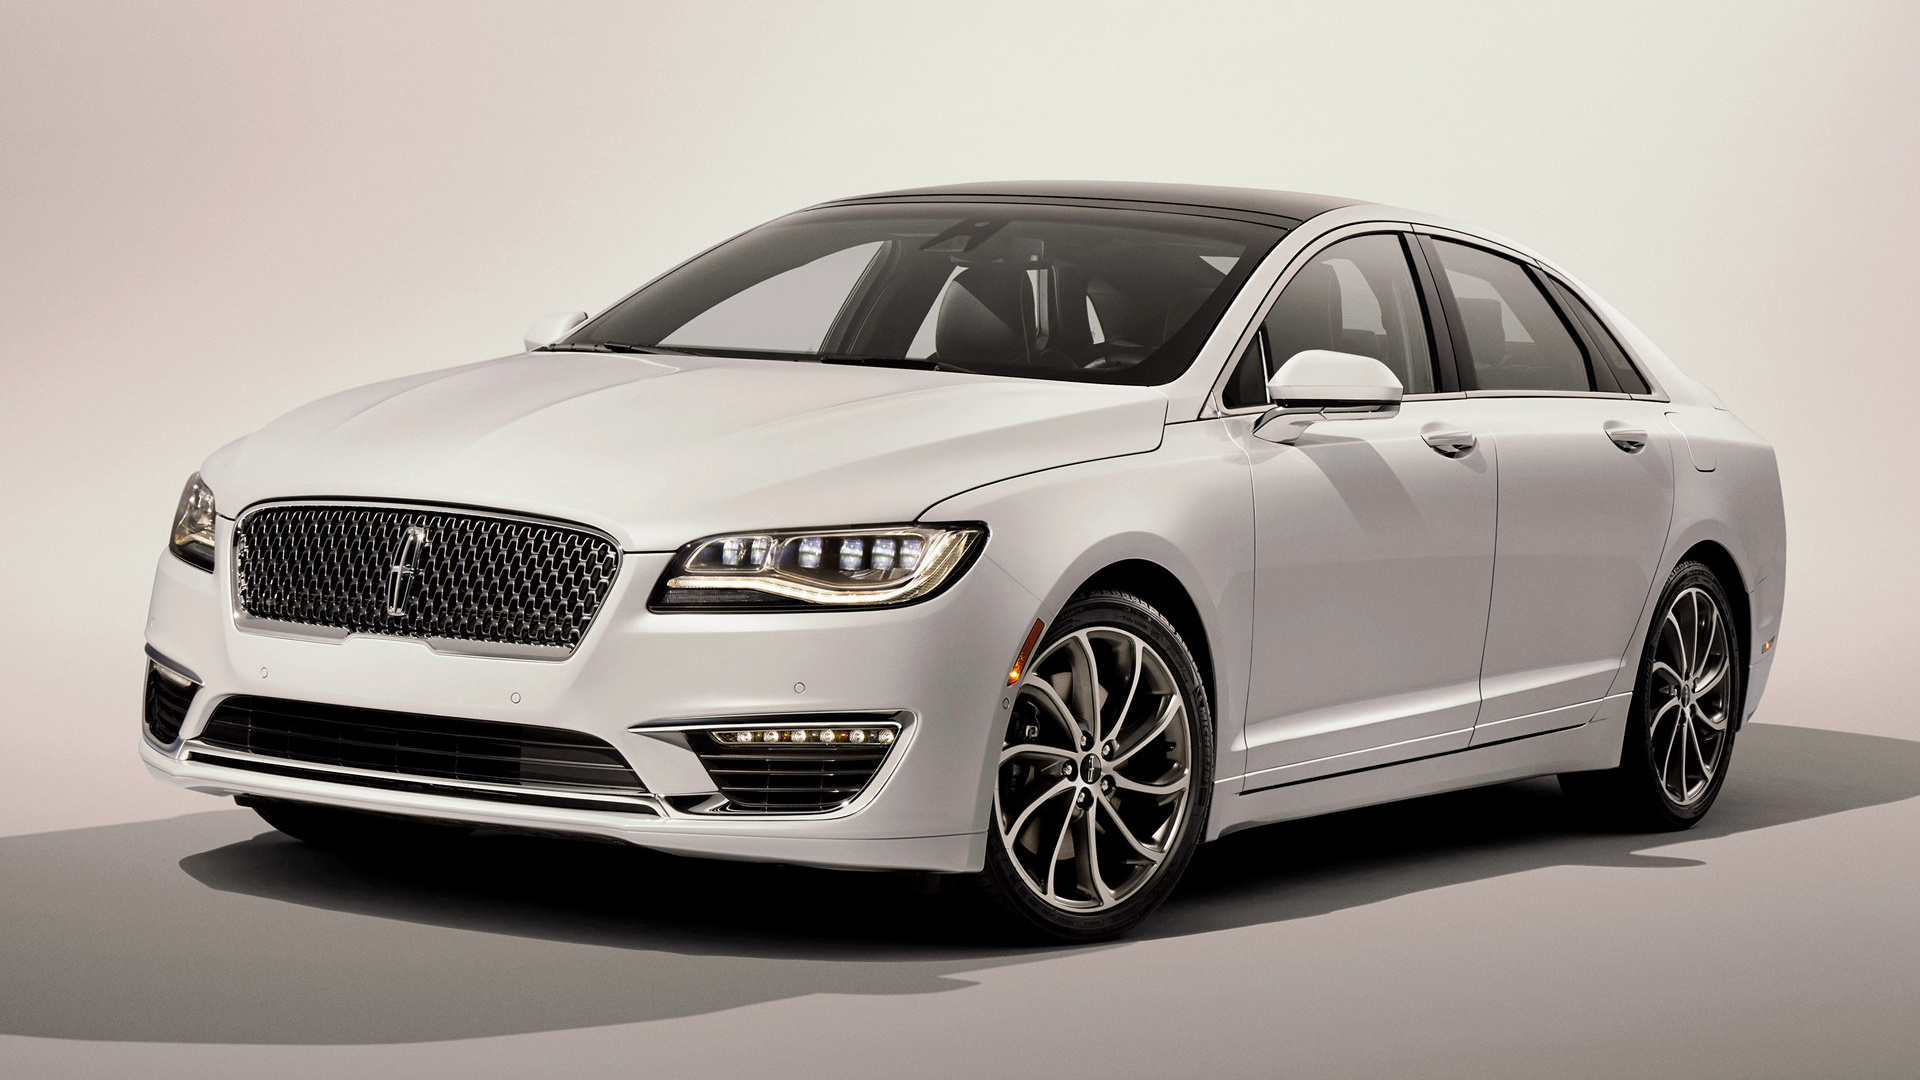 Lincoln MKZ (2017) Wallpapers and HD Images - Car Pixel